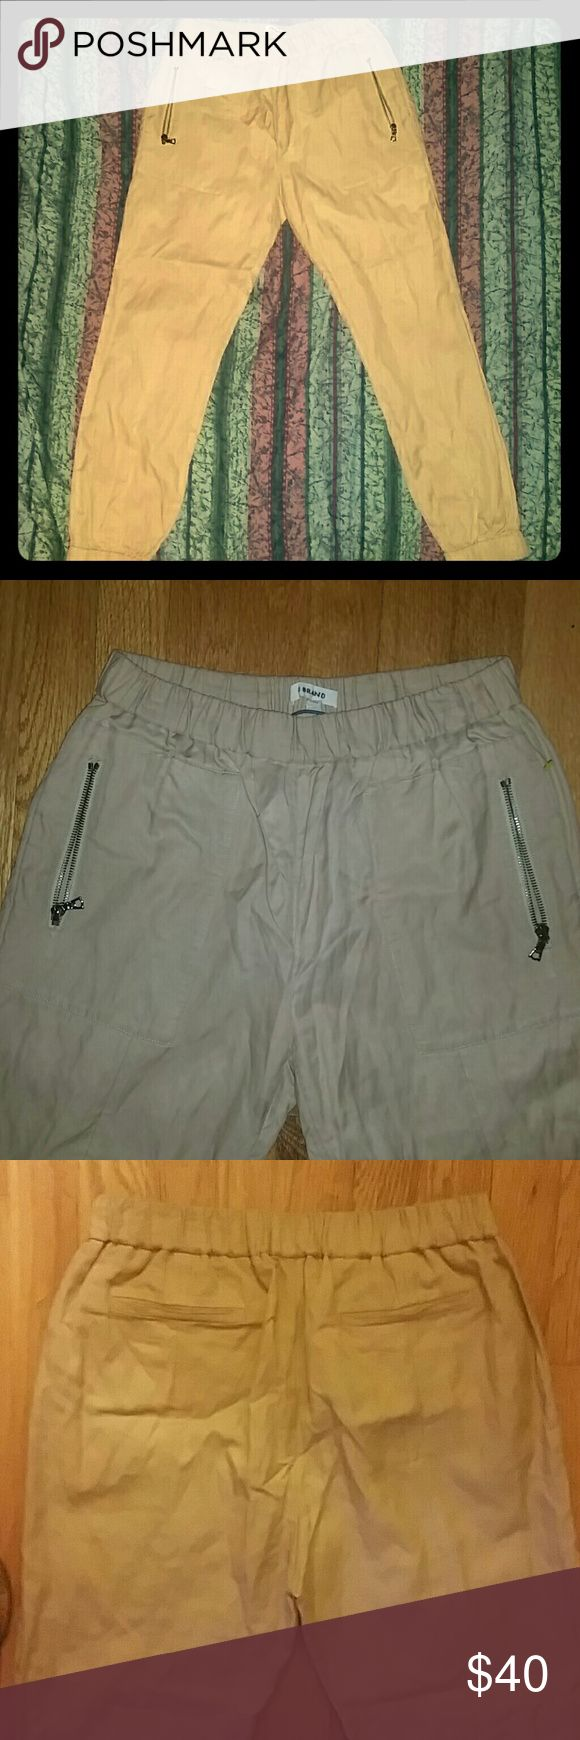 Flash Sale! NWOT J Brand Medium Khaki Jogger Pants NWOT J Brand Women's Khaki Jogger Pants in Medium. 50% cotton, 45% viscose, 5% metal. Thin material light khaki color with elastic banding at waist and ankles for comfortable, casual fit that can still pass in the office. J Brand Pants